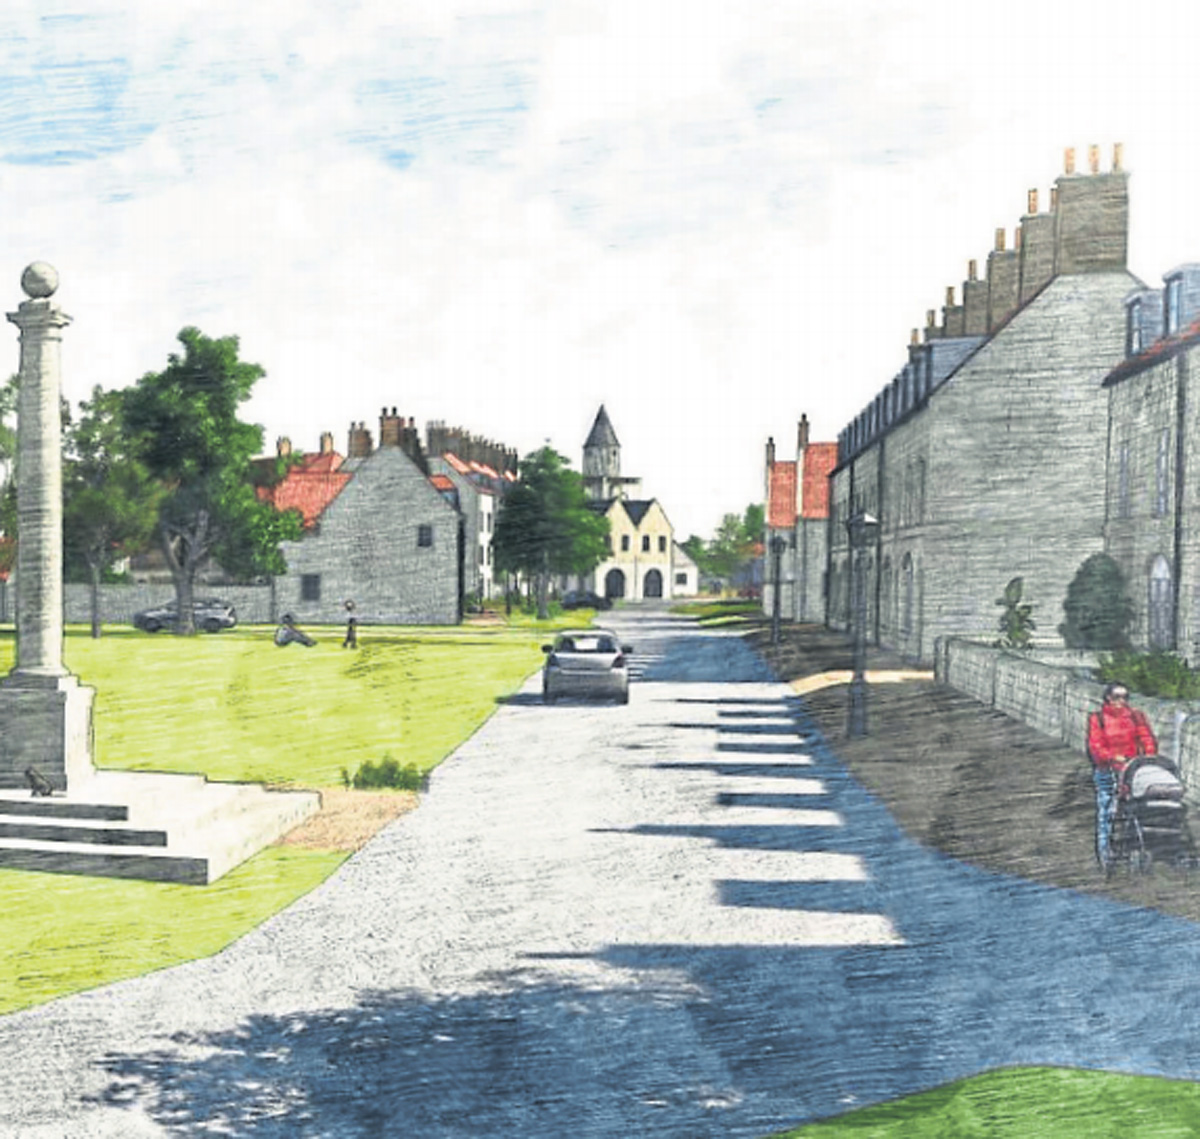 The proposed development at Castle Howard Road in Malton